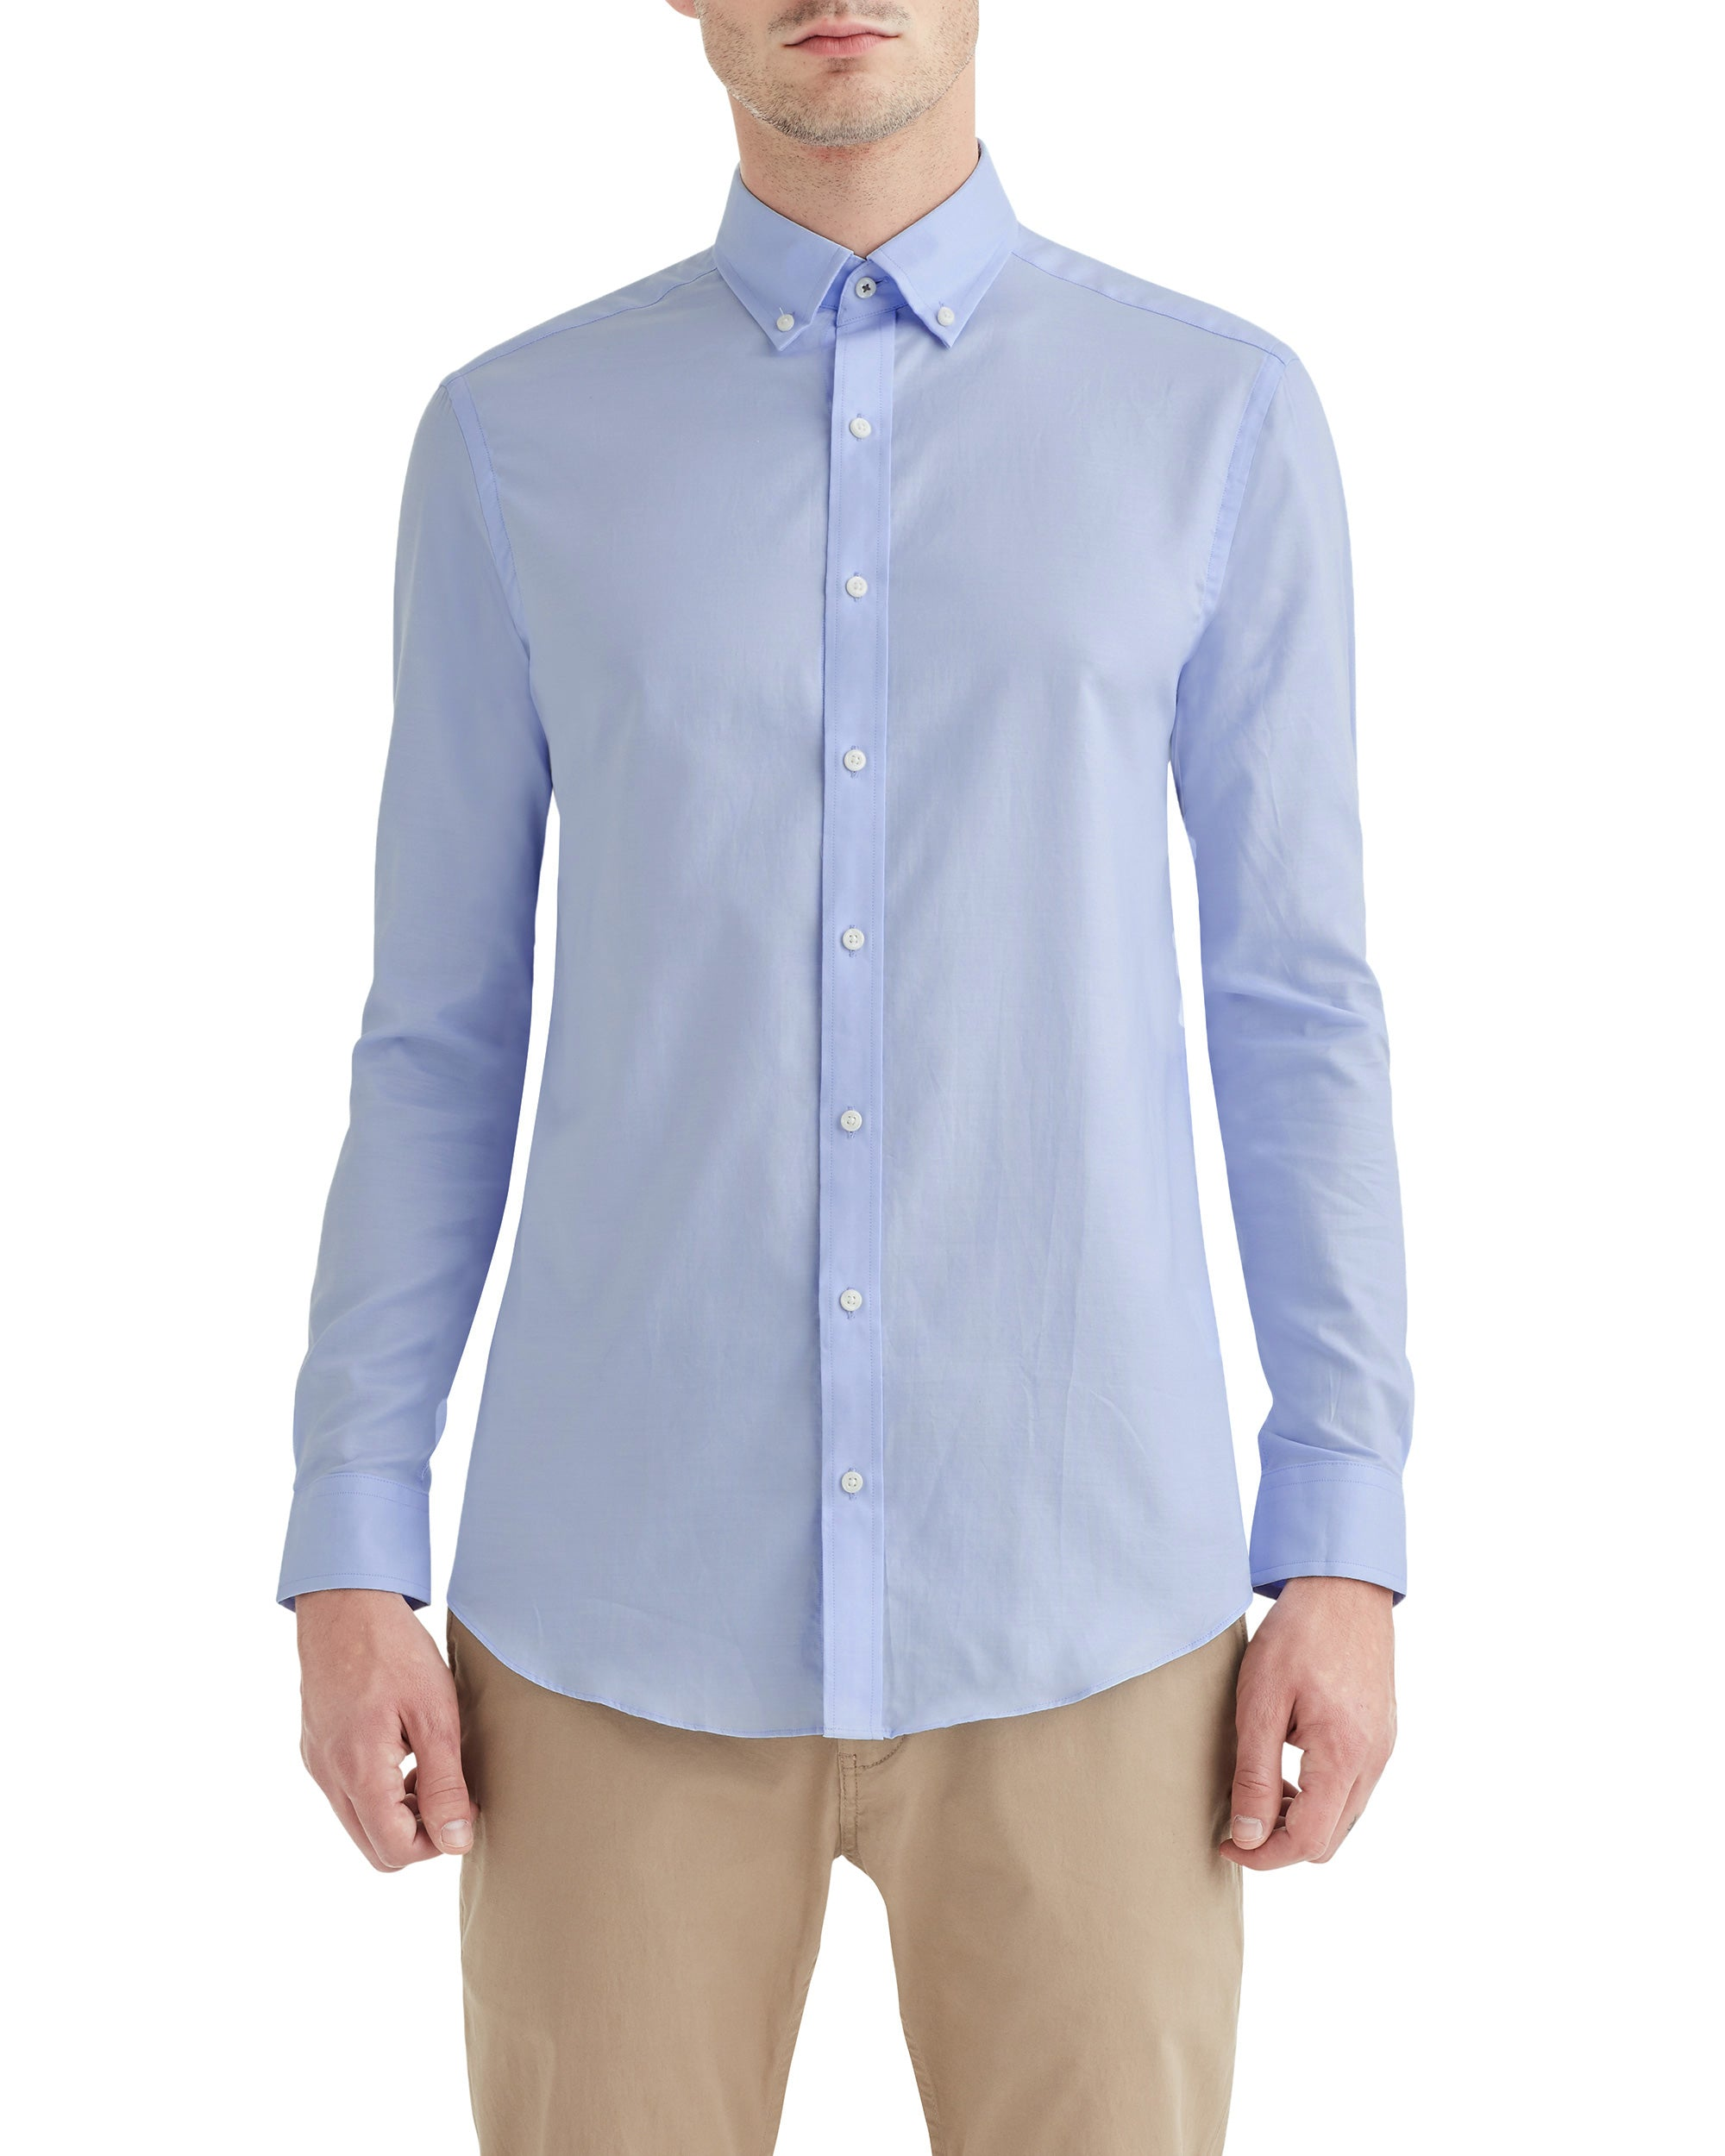 Blue Solid Oxford Slim Fit Dress Shirt